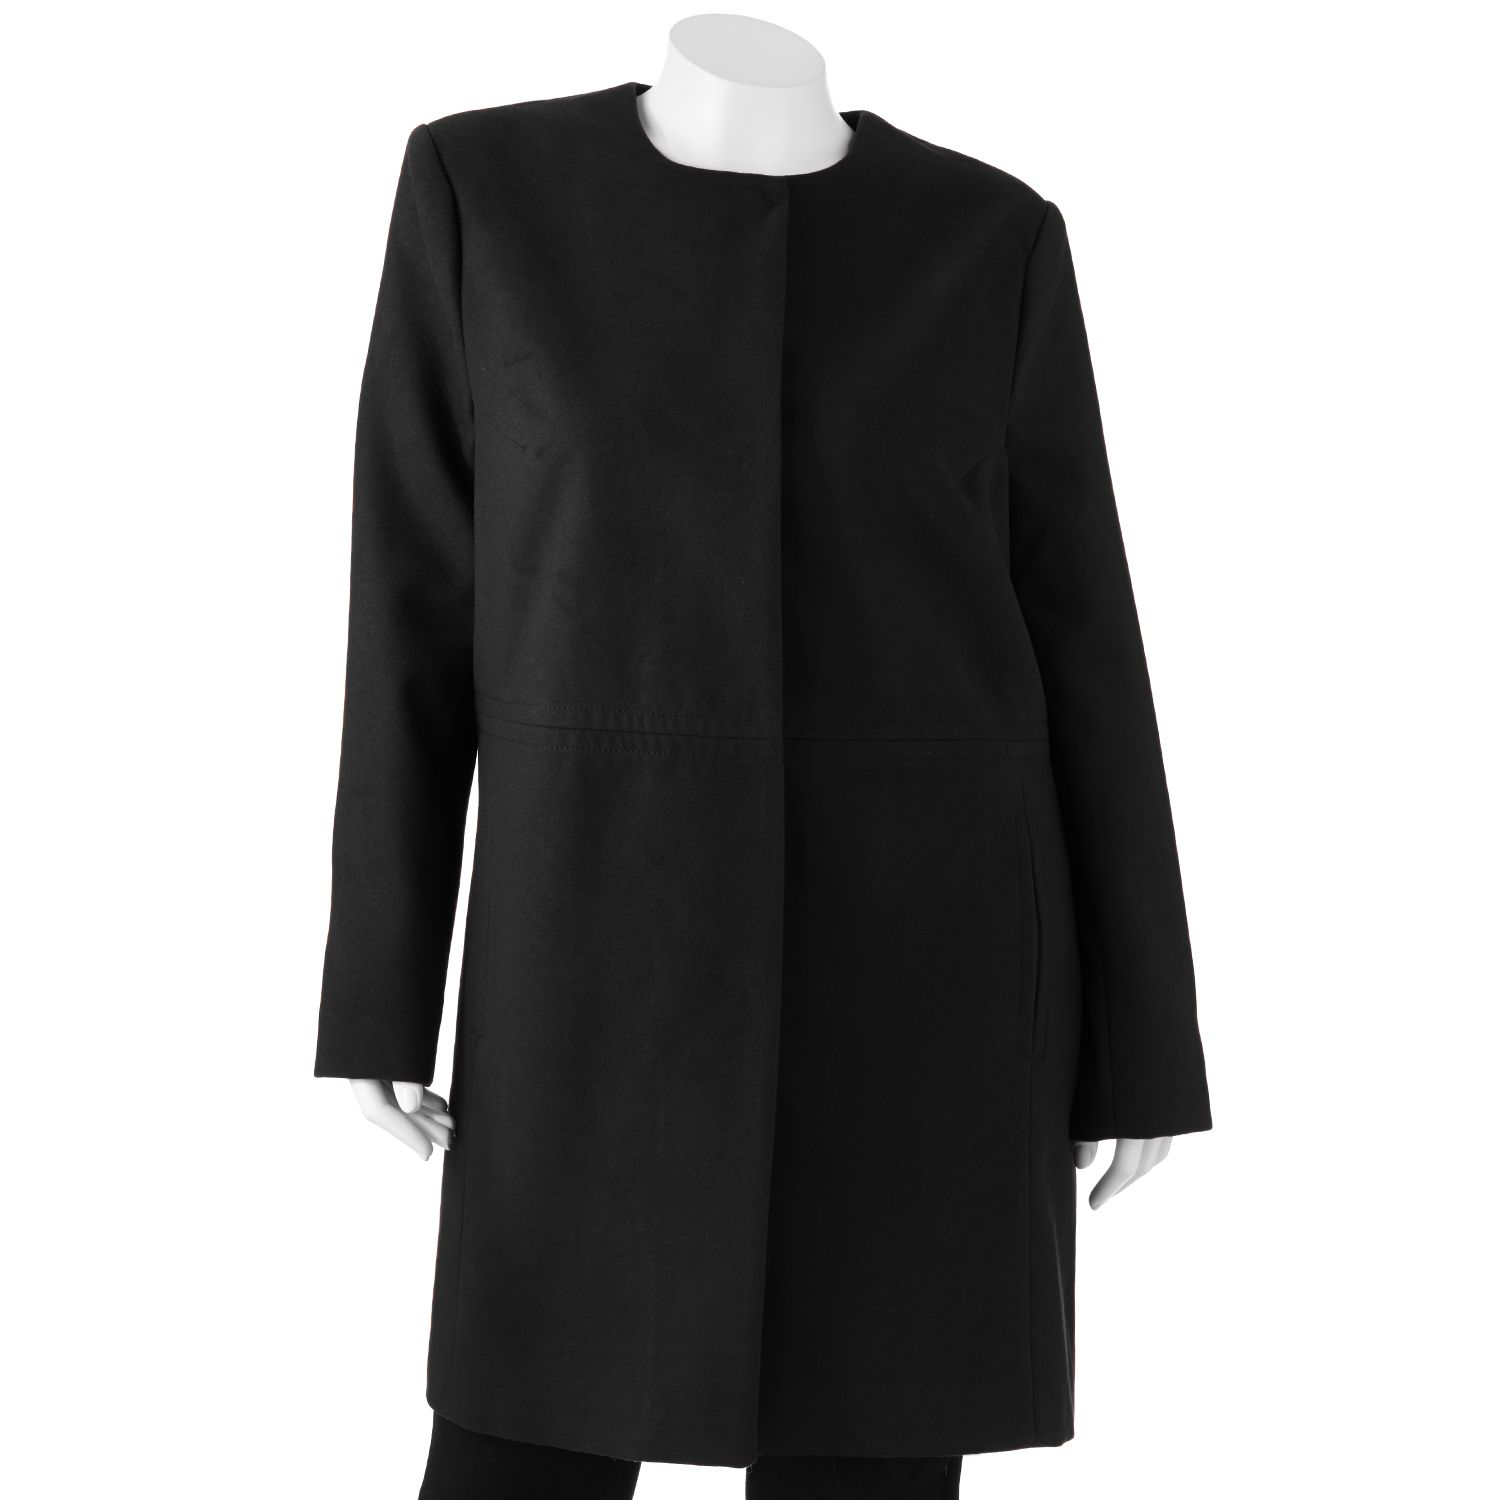 Apt. 9 Collarless Coat - Women's Plus